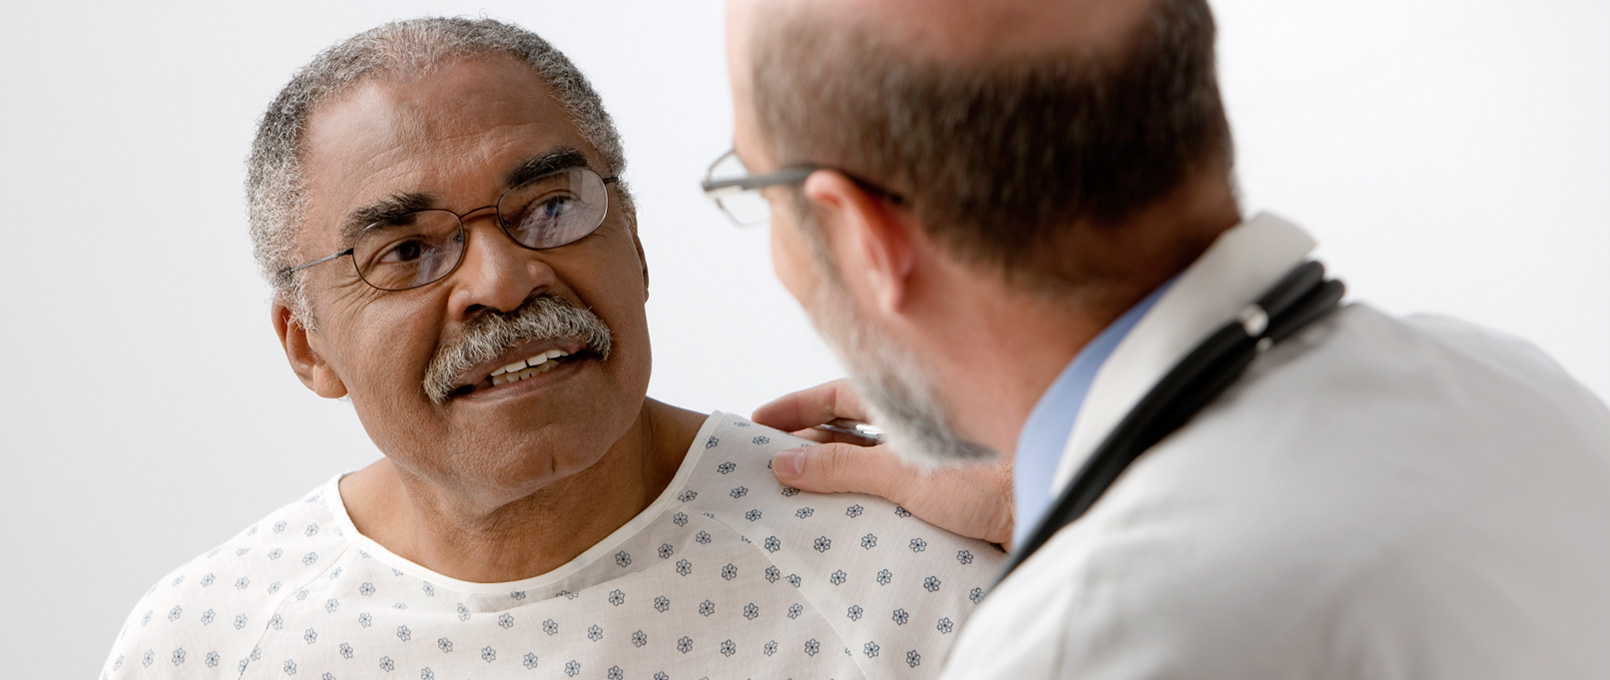 Talking With Your Doctor About Multiple Myeloma